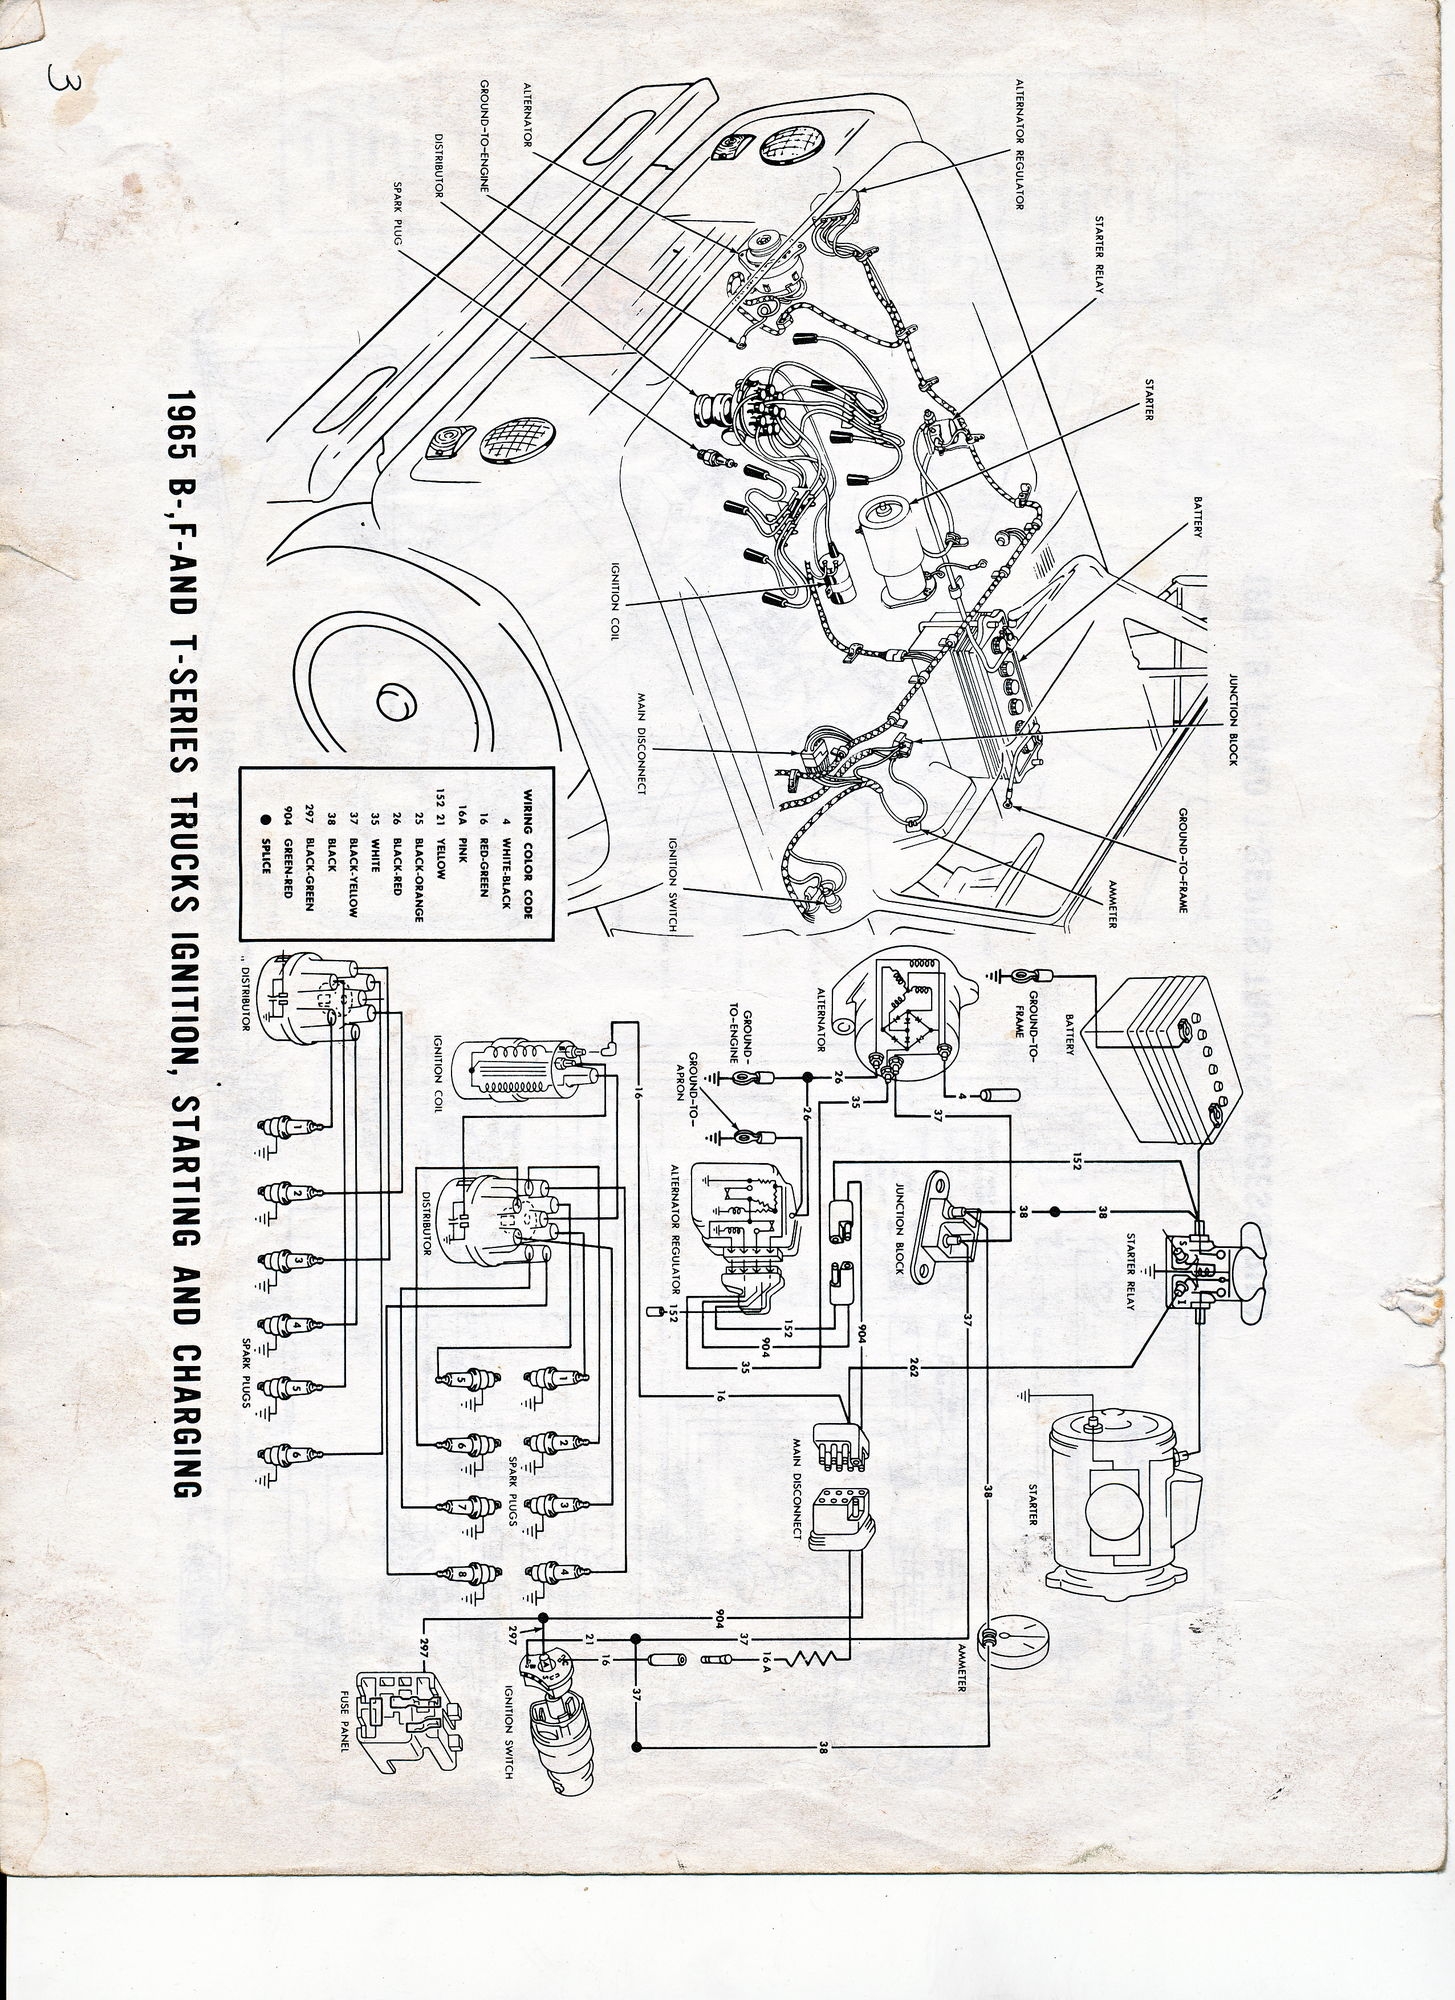 Voltage Regulator Wiring Diagram Ford Alternator Regulator